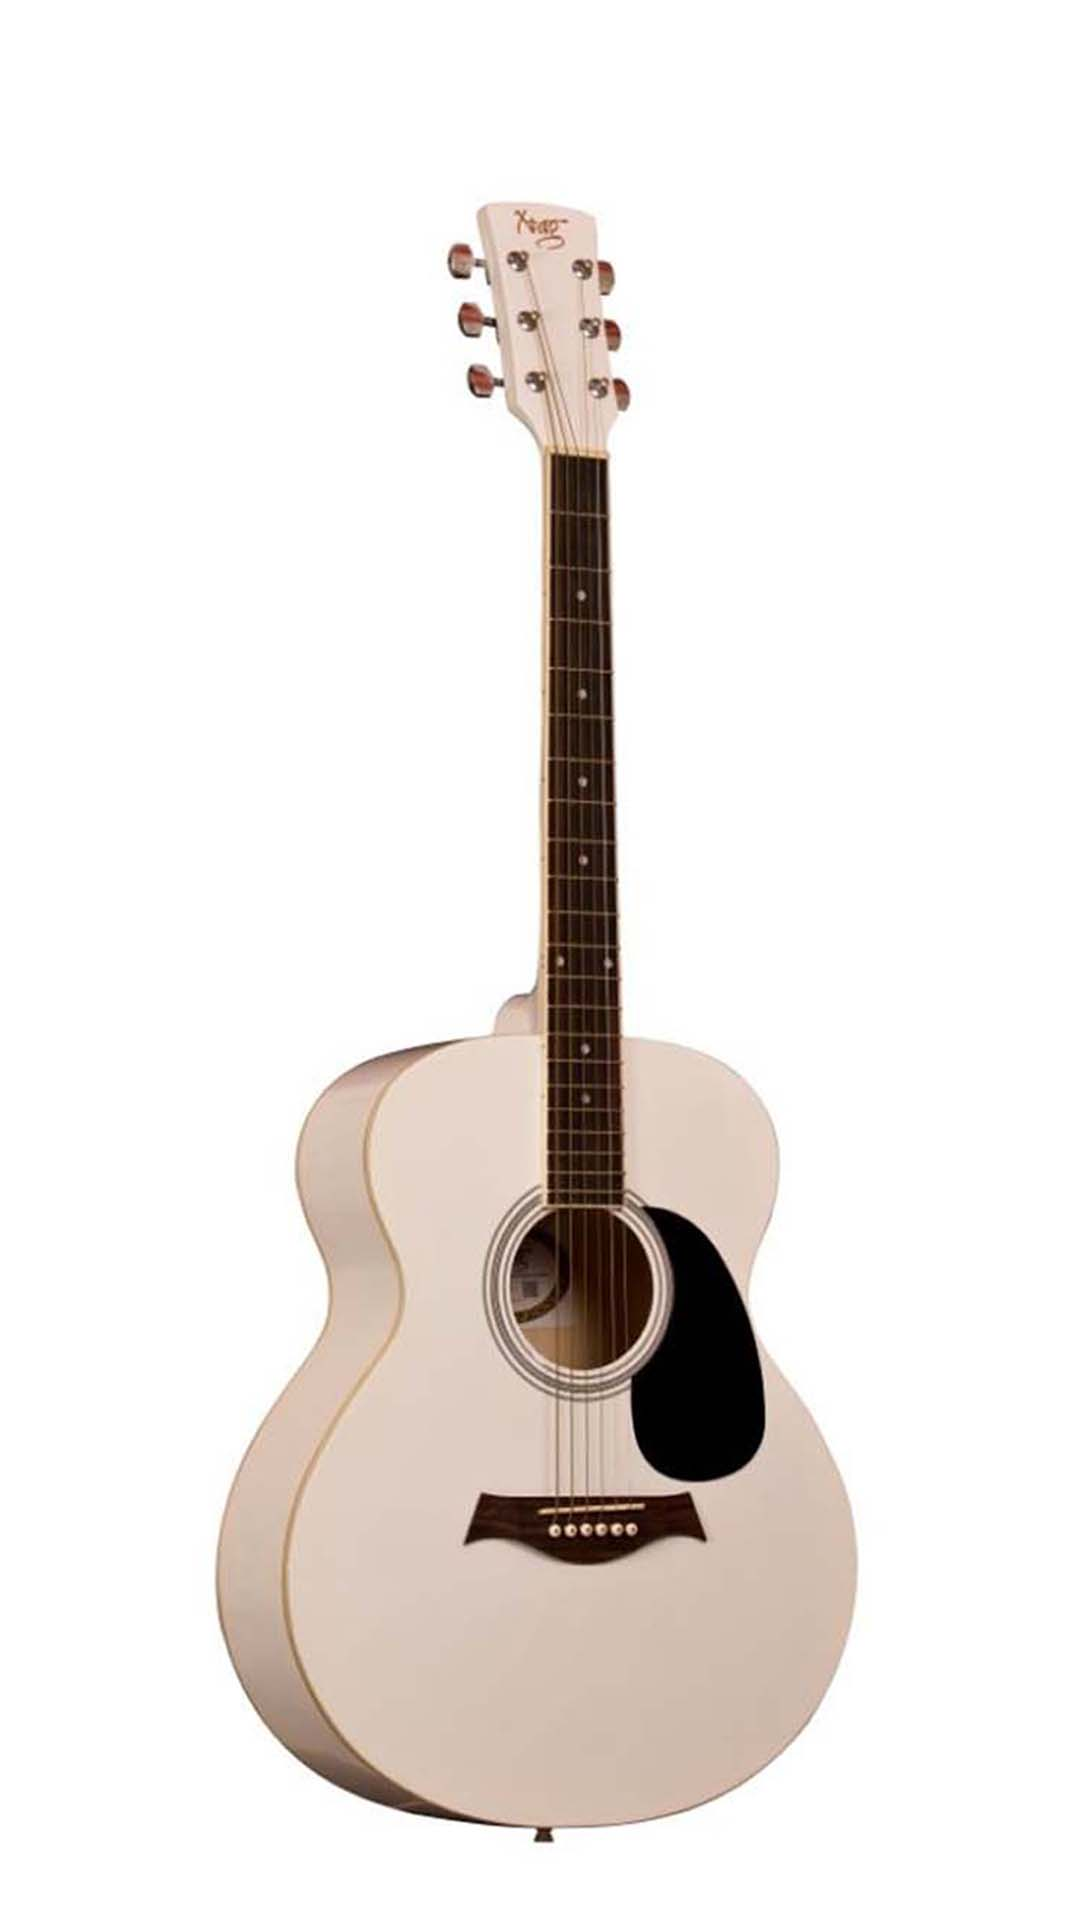 X Tag Acoustic Guitar White available at Paytm for Rs.8999